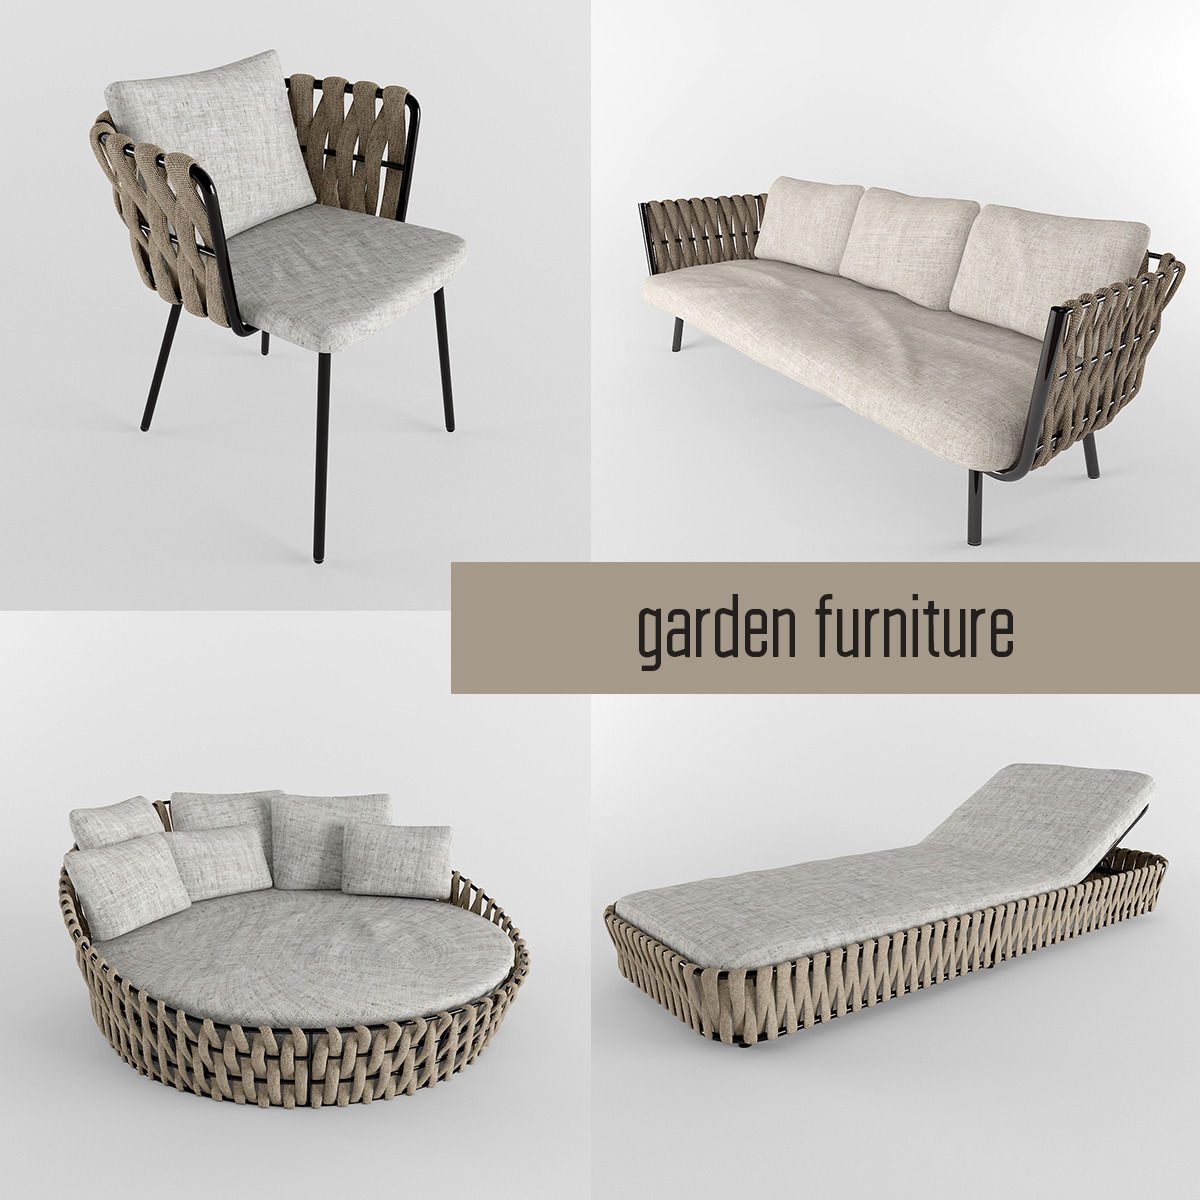 garden furniture collection 3d model max obj fbx 1